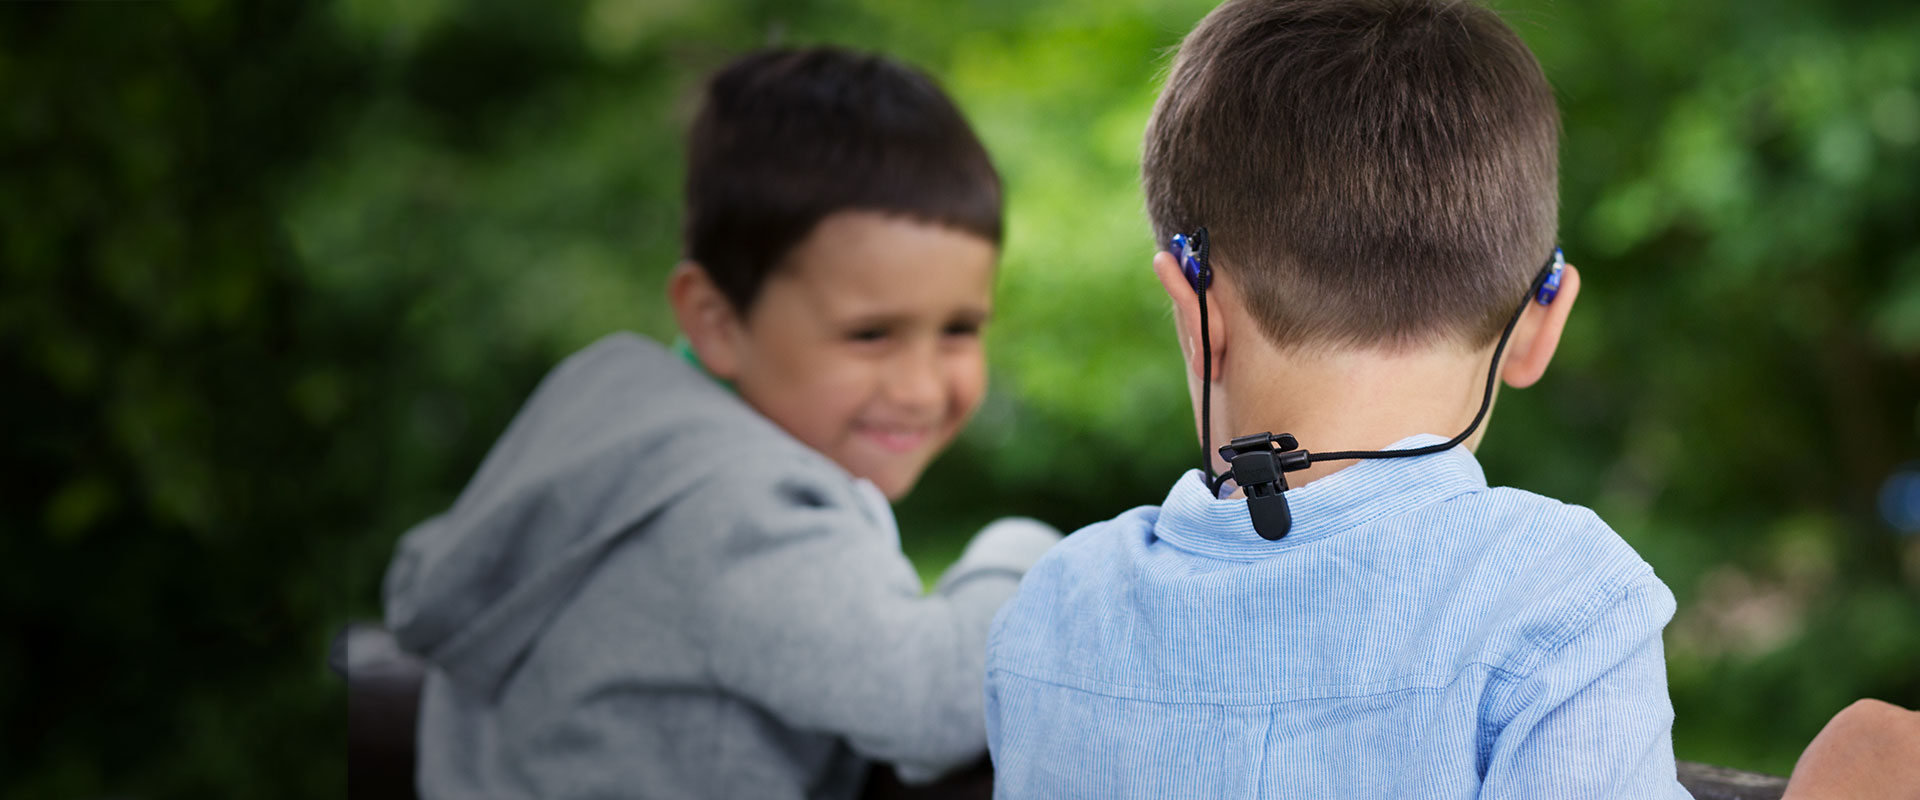 Boy with retention cord for hearing aids